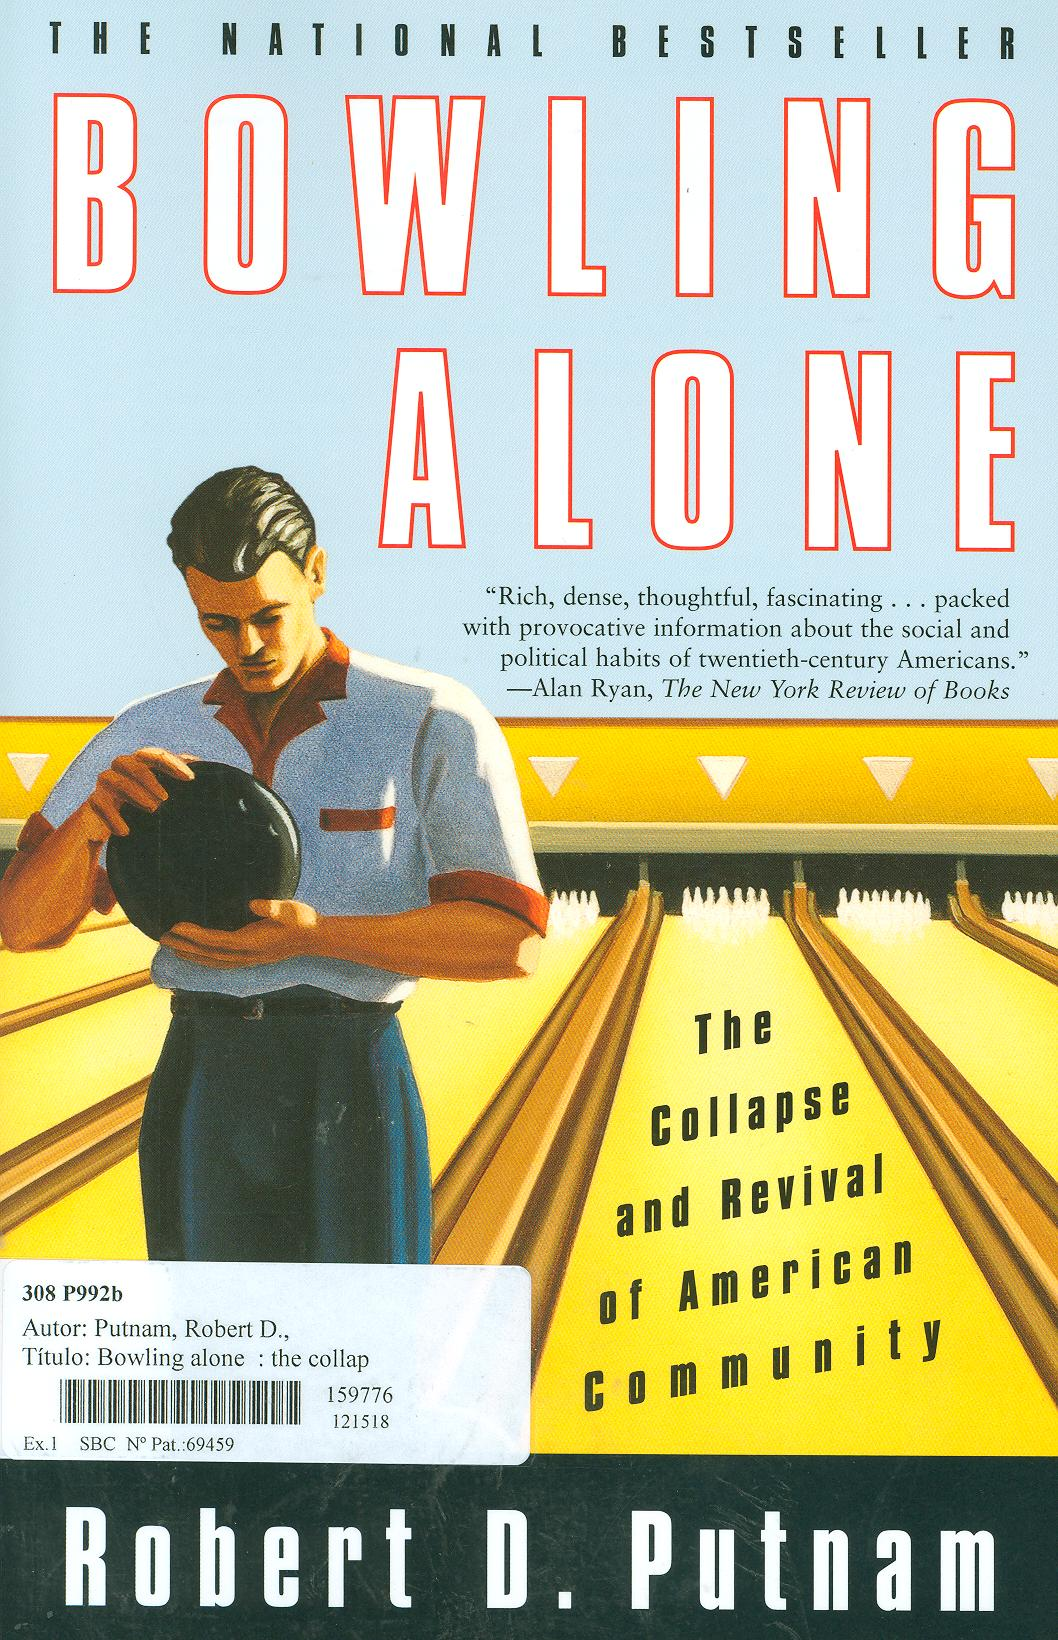 bowling alone the collapse and revival of american community essay This chapter discusses robert putnam's 2000 book, bowling alone: the collapse and revival of american community, in which he documents the decline in civic engagement, social connectedness and social capital, and sense of community among americans putnam illustrates the devastating effects of these trends for america and americans by.